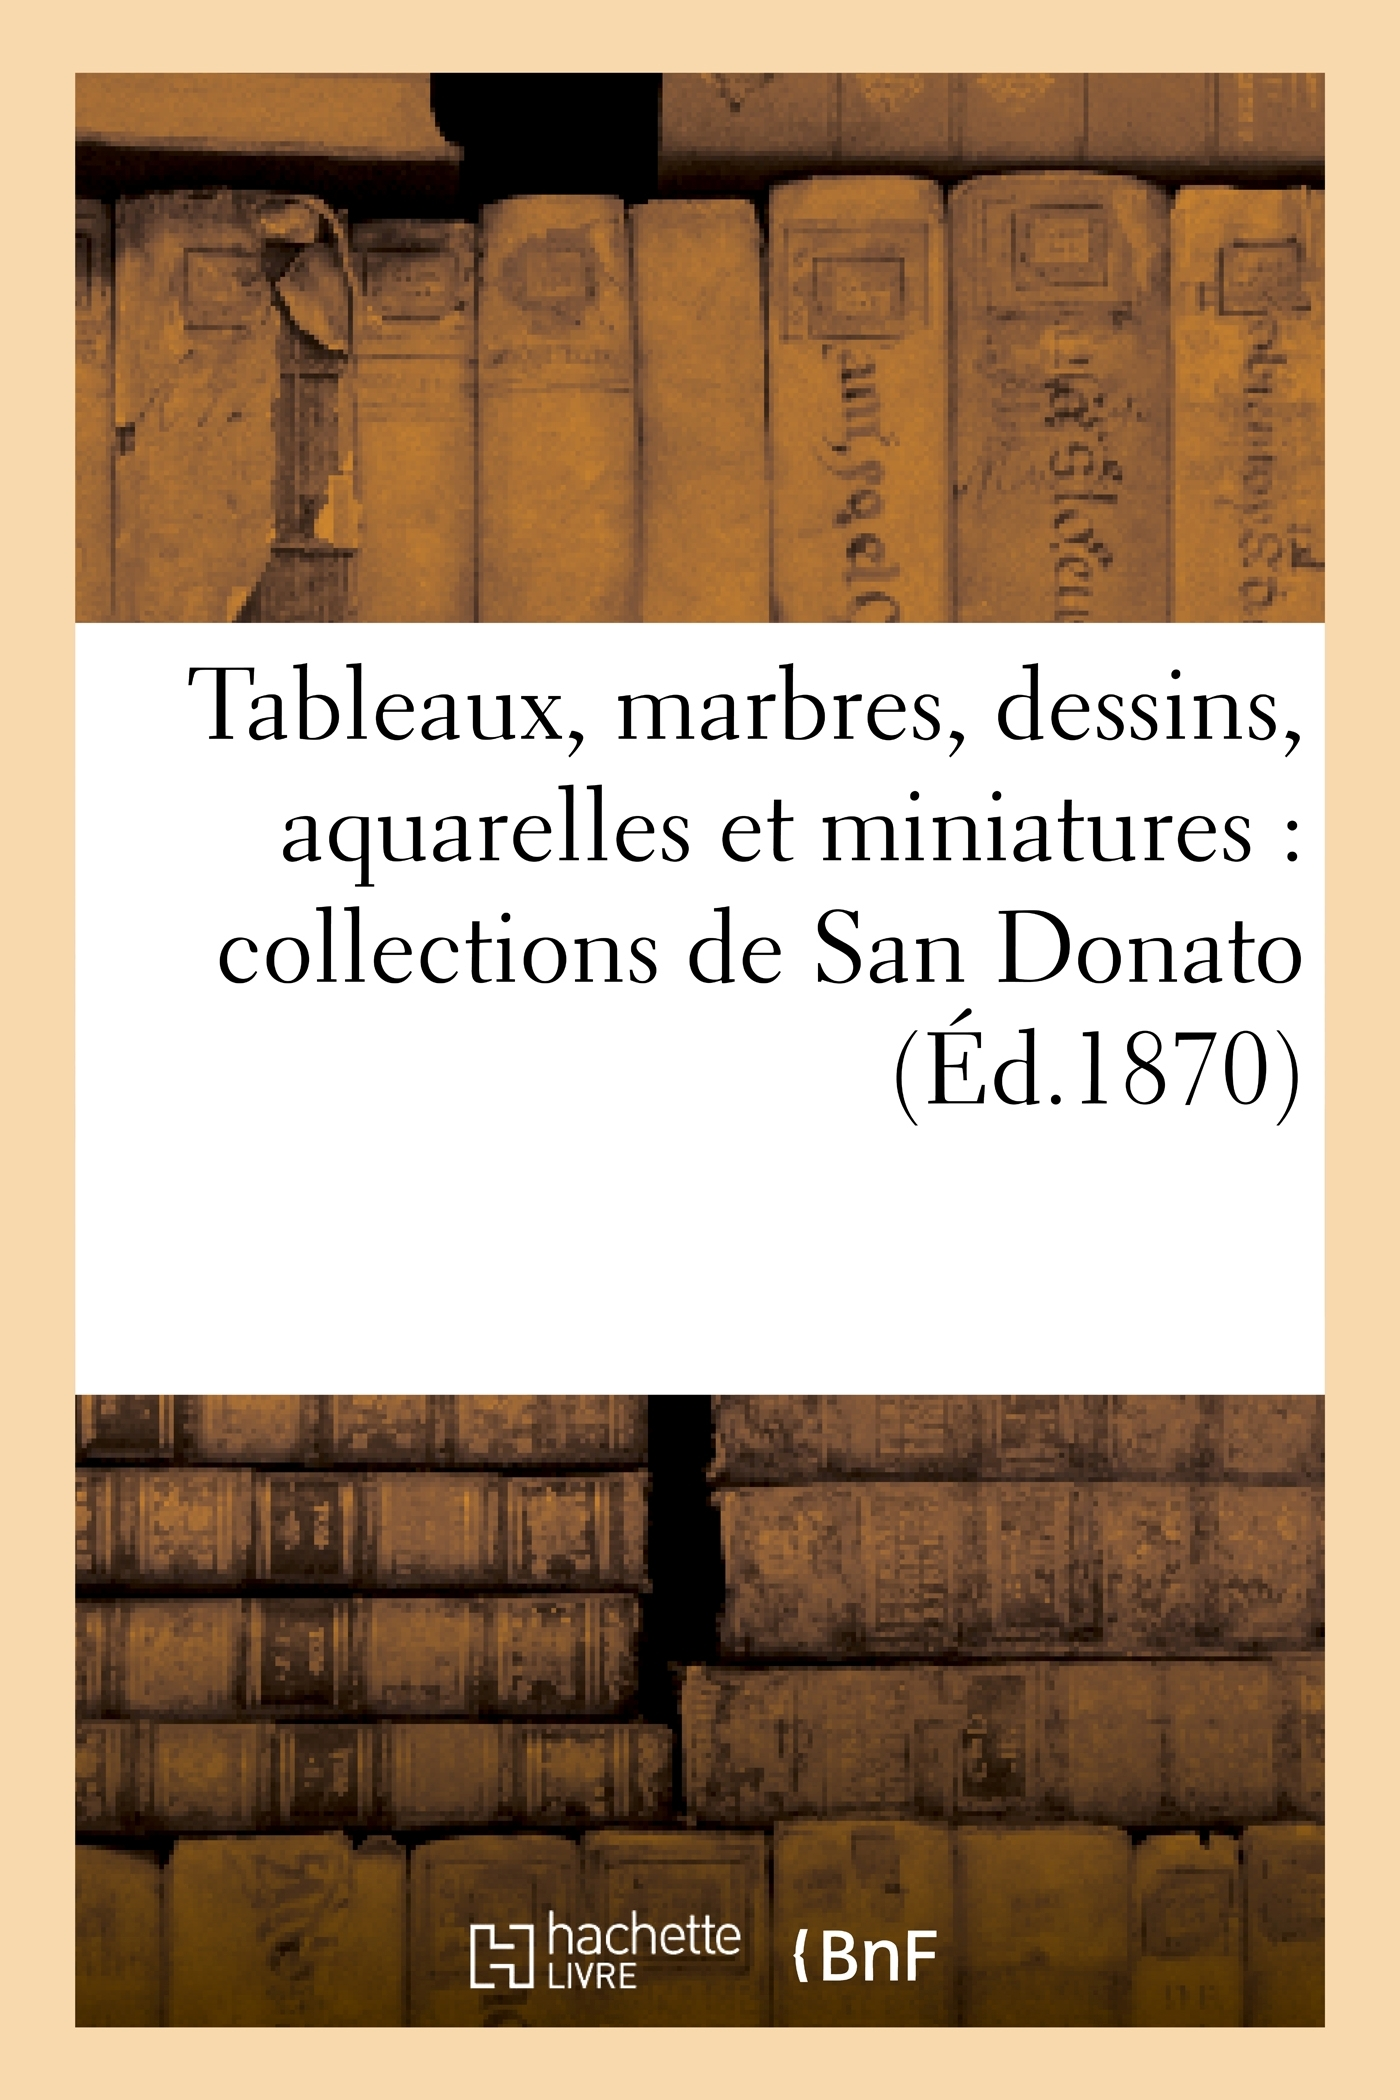 TABLEAUX, MARBRES, DESSINS, AQUARELLES ET MINIATURES : COLLECTIONS DE SAN DONATO